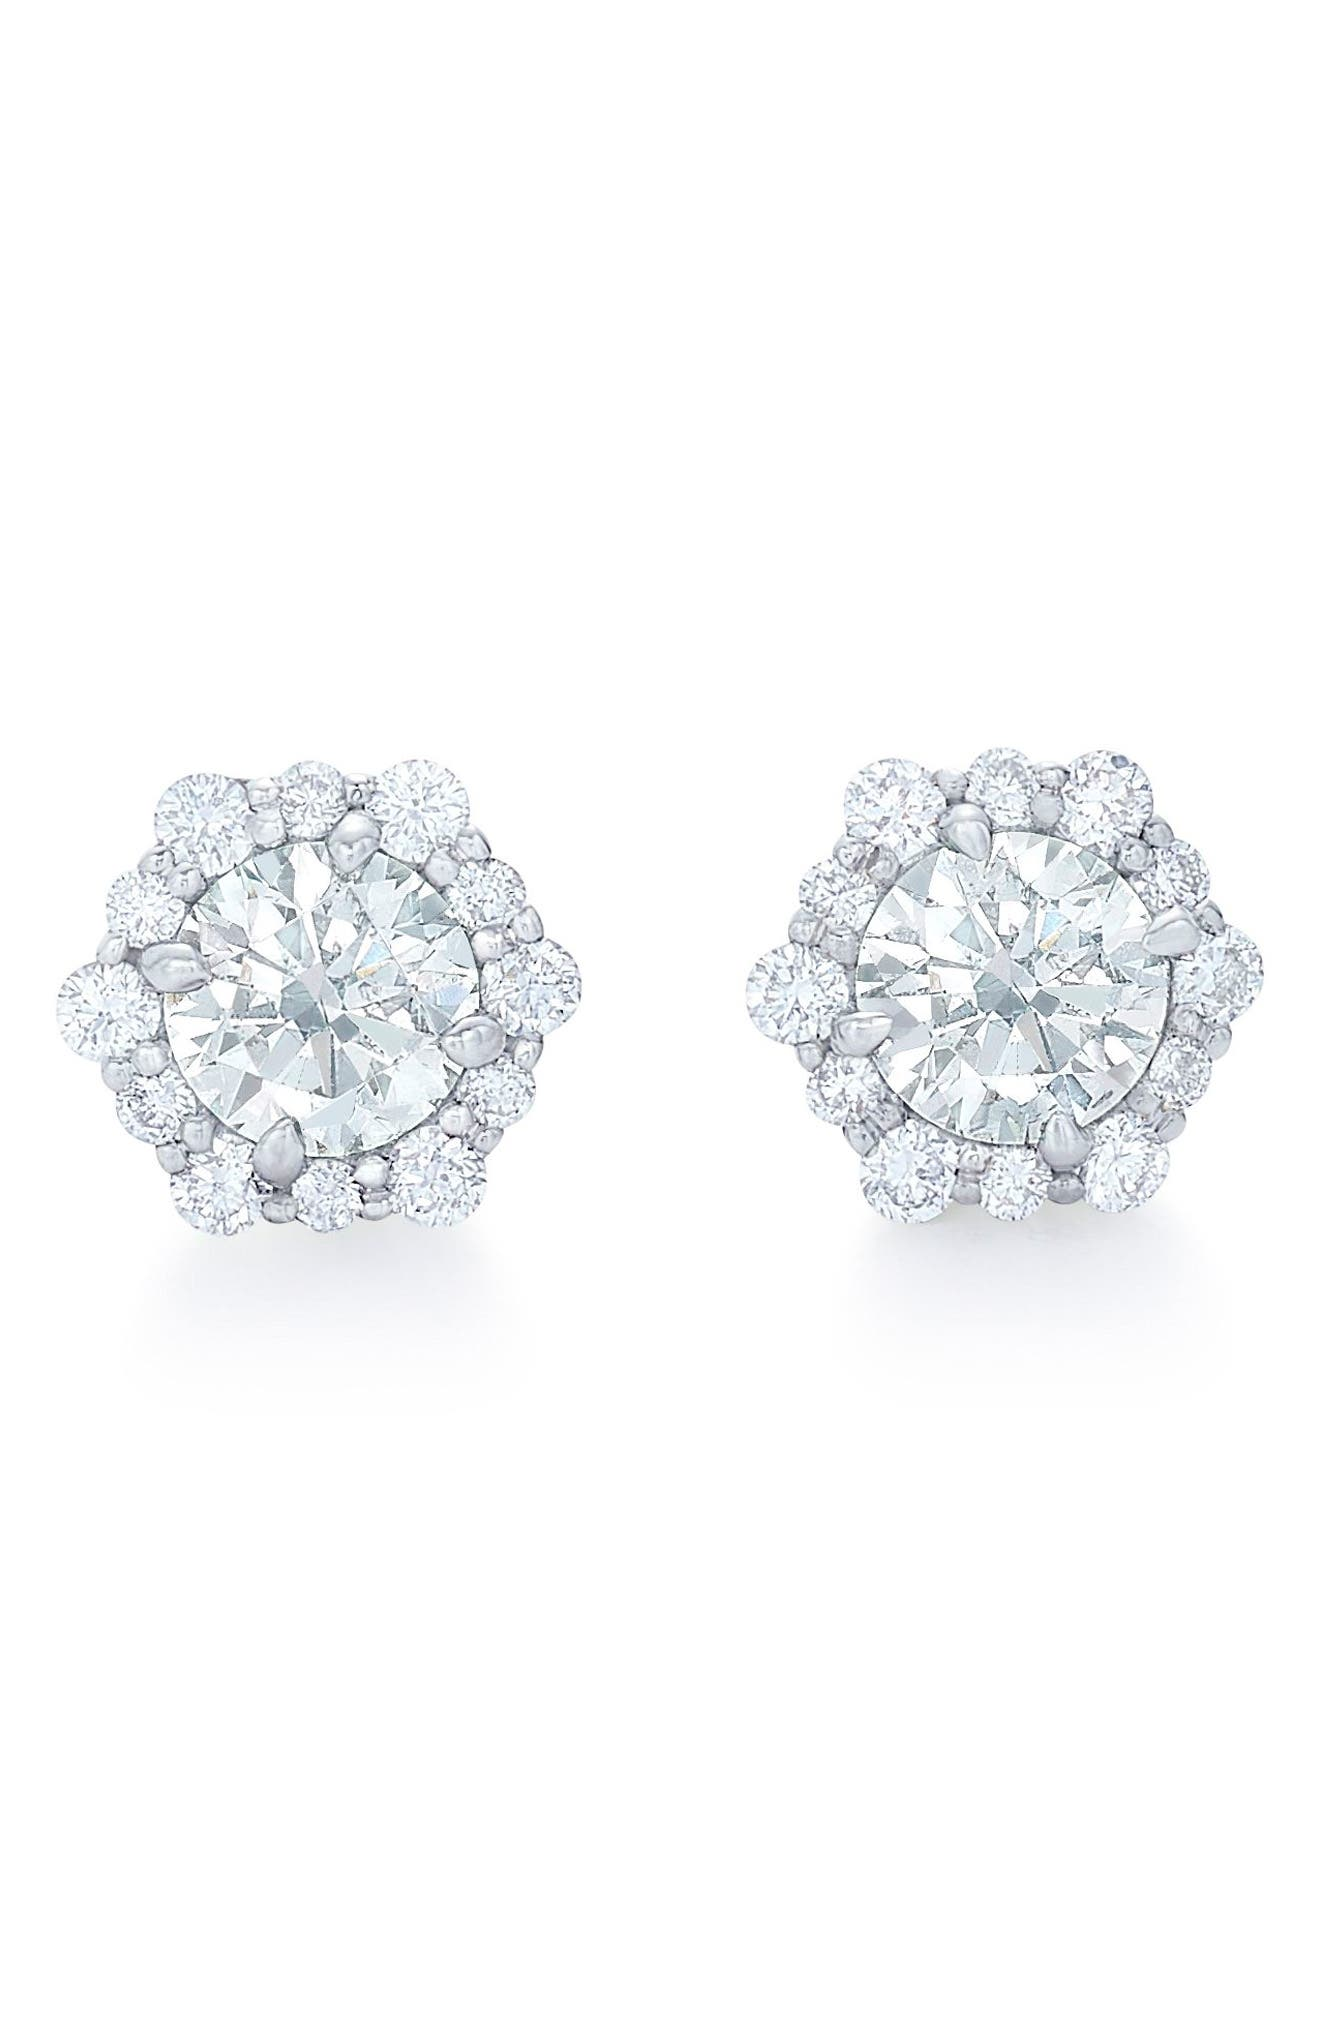 Diamond Halo Stud Earrings by Kwiat